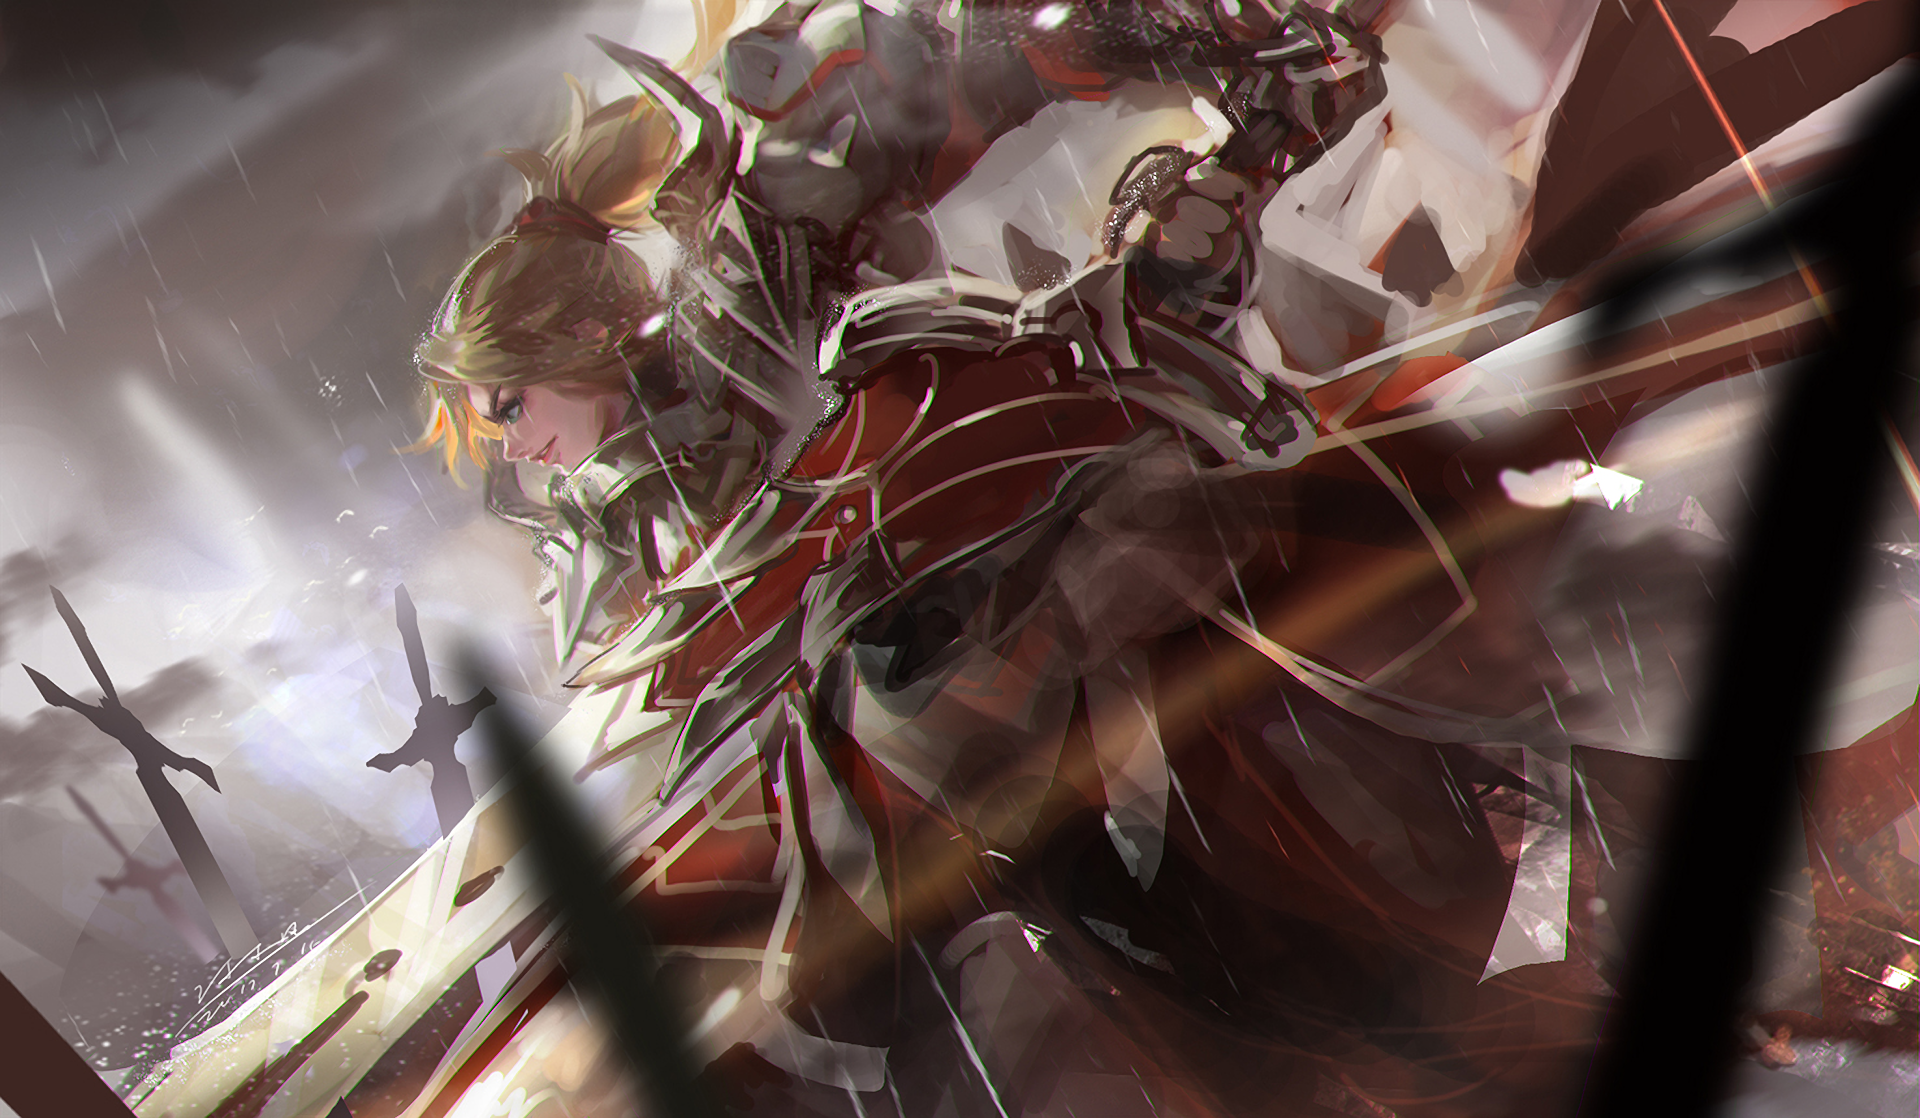 Hd Wallpaper - Fate Apocrypha Mordred , HD Wallpaper & Backgrounds